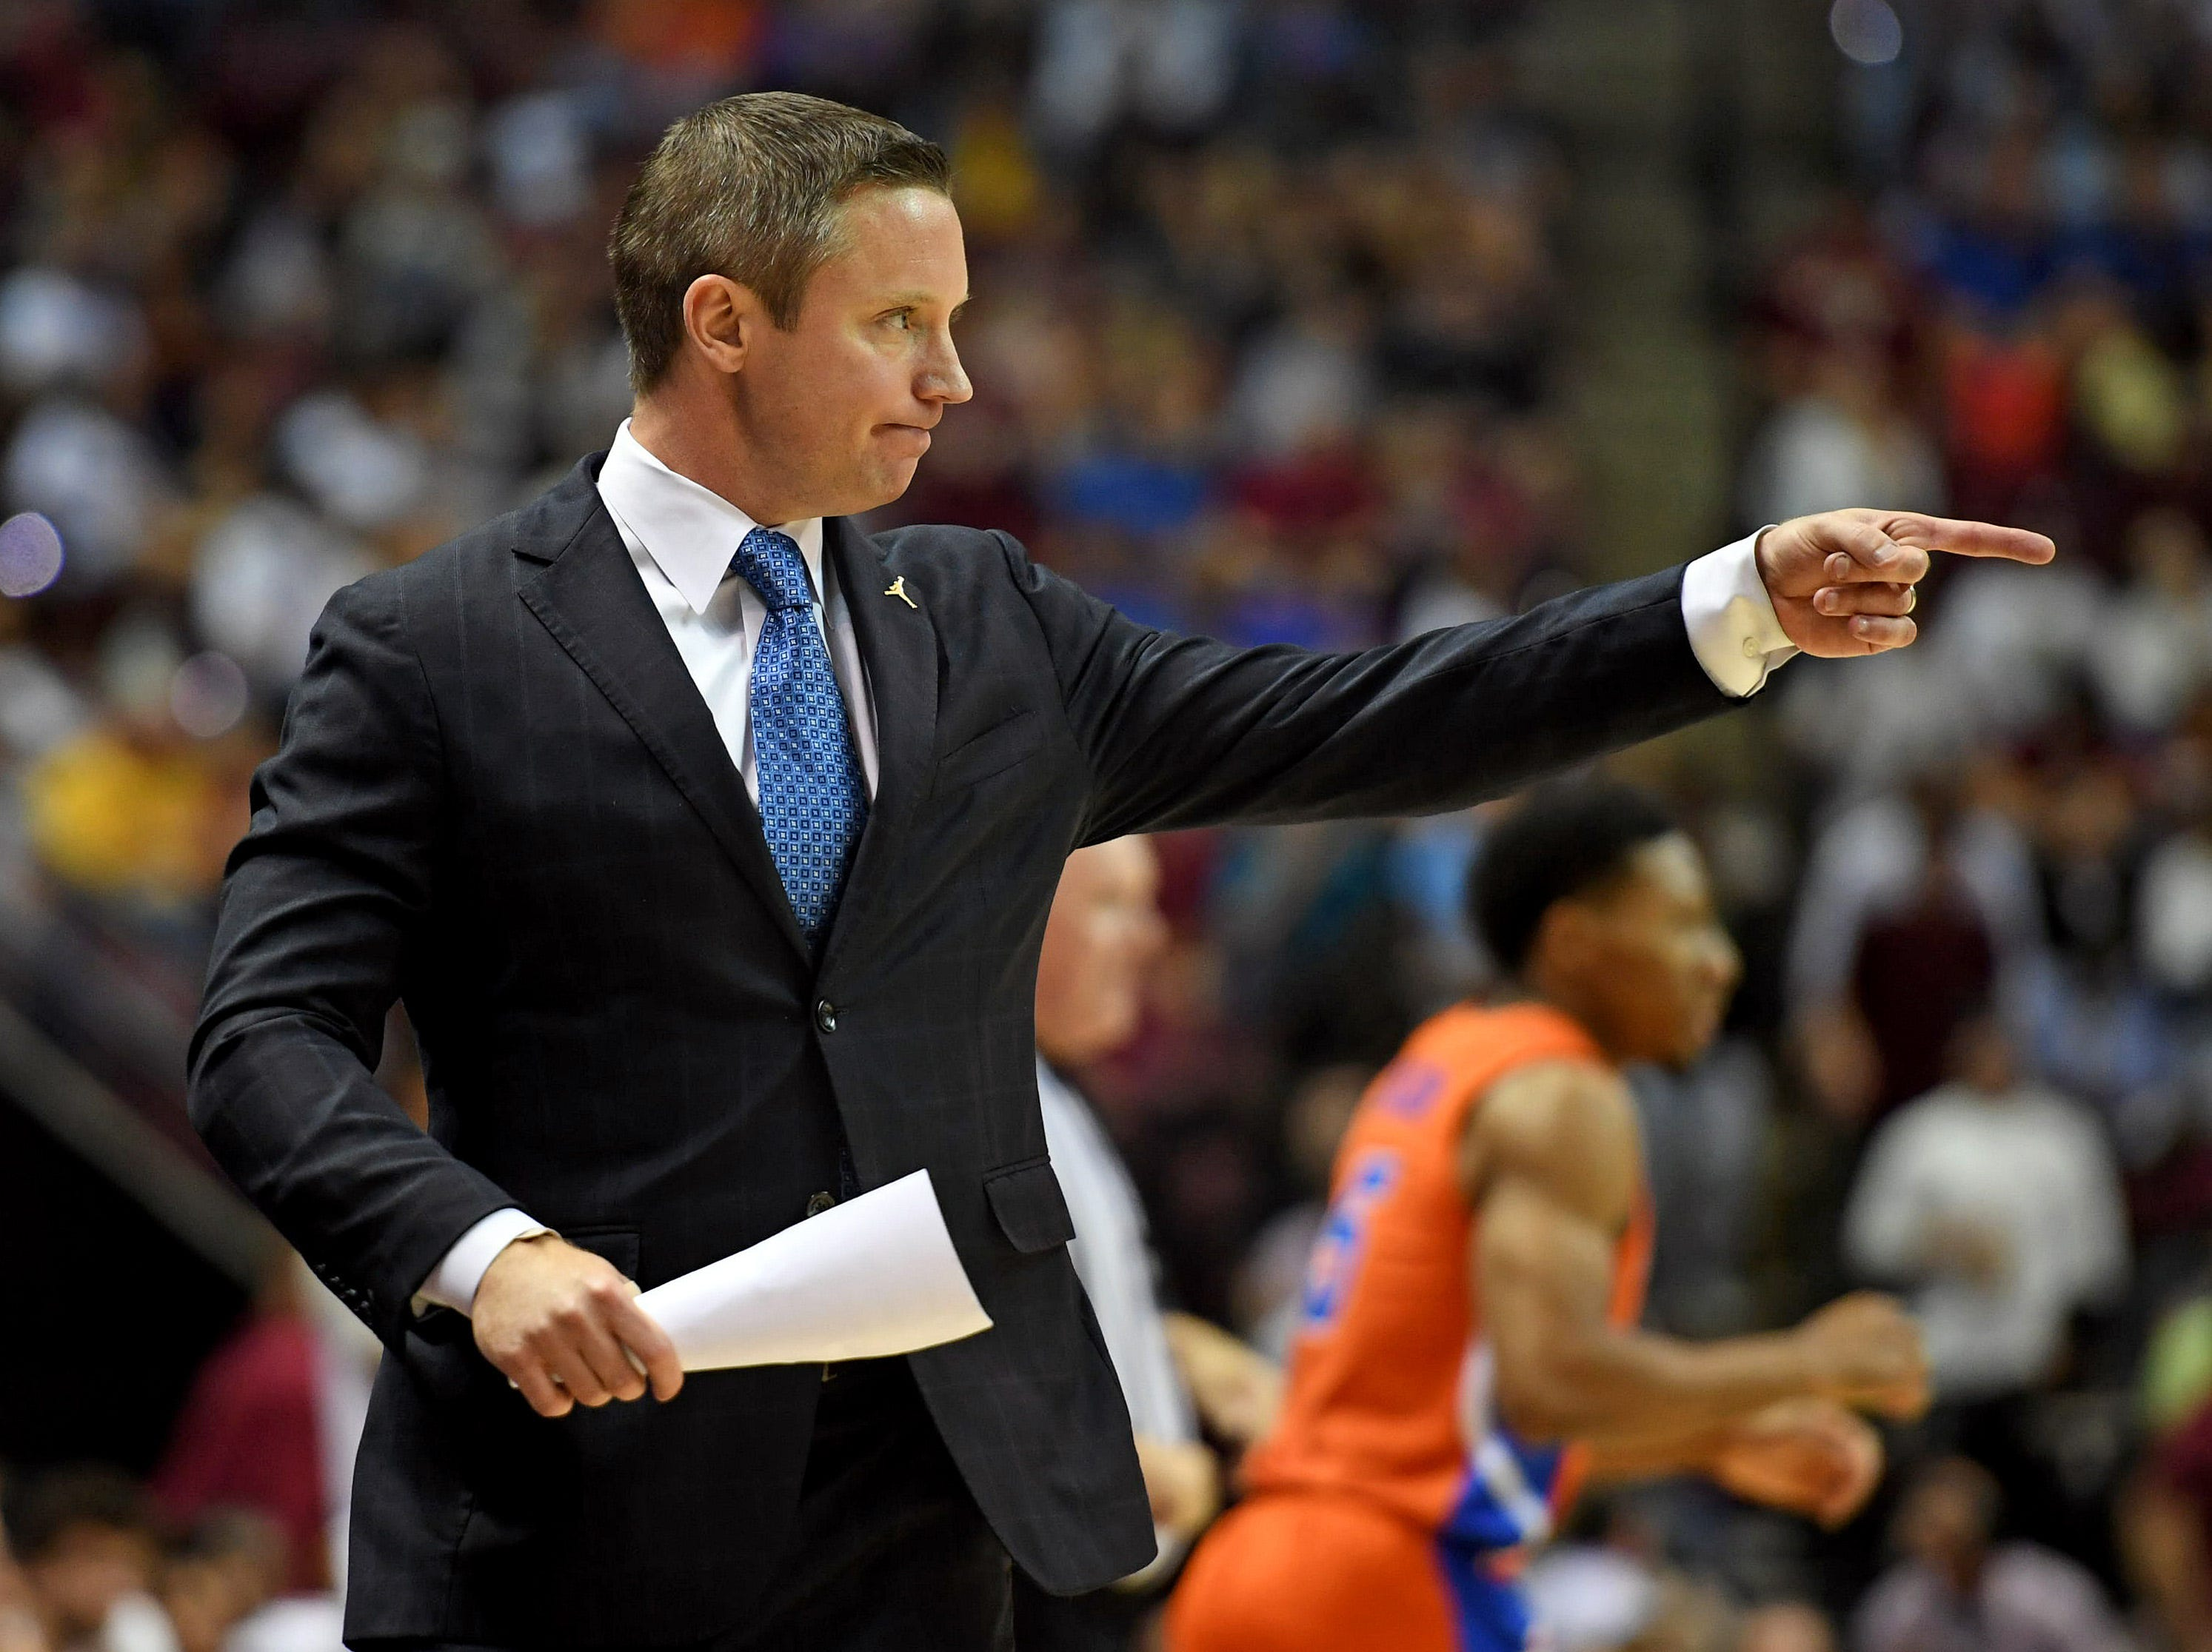 Nov 6, 2018; Tallahassee, FL, USA; Florida Gators head coach Mike White during the game against the Florida State Seminoles at Donald L. Tucker Center. Mandatory Credit: Melina Myers-USA TODAY Sports